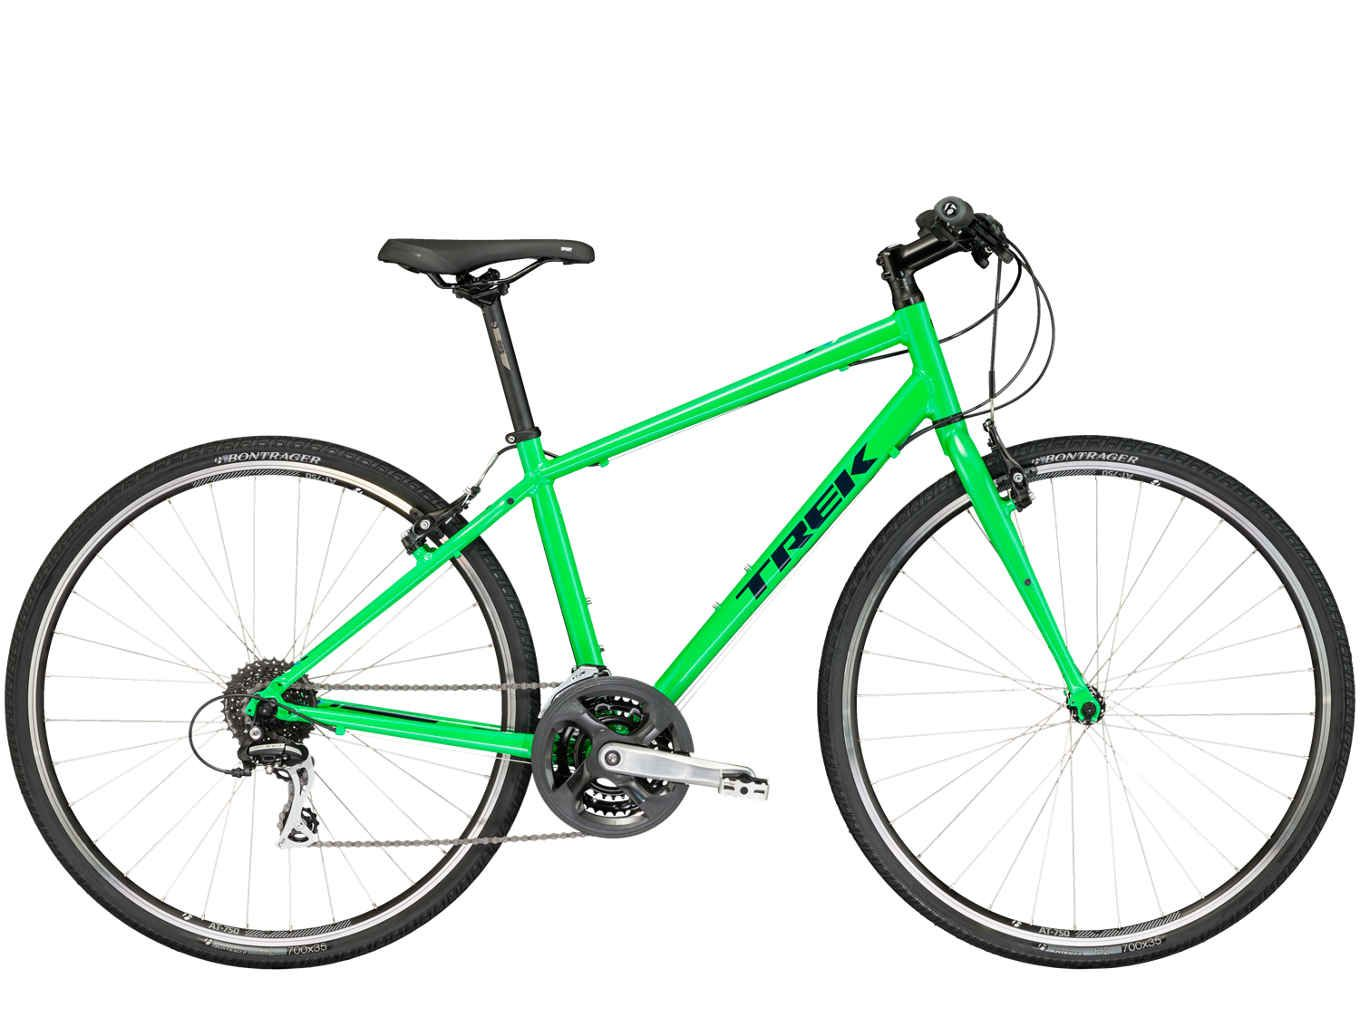 Closeout Fx 2 Women S Dave S Bike Shop Raymore Mo Trek Bikes Biking Workout Hybrid Bike